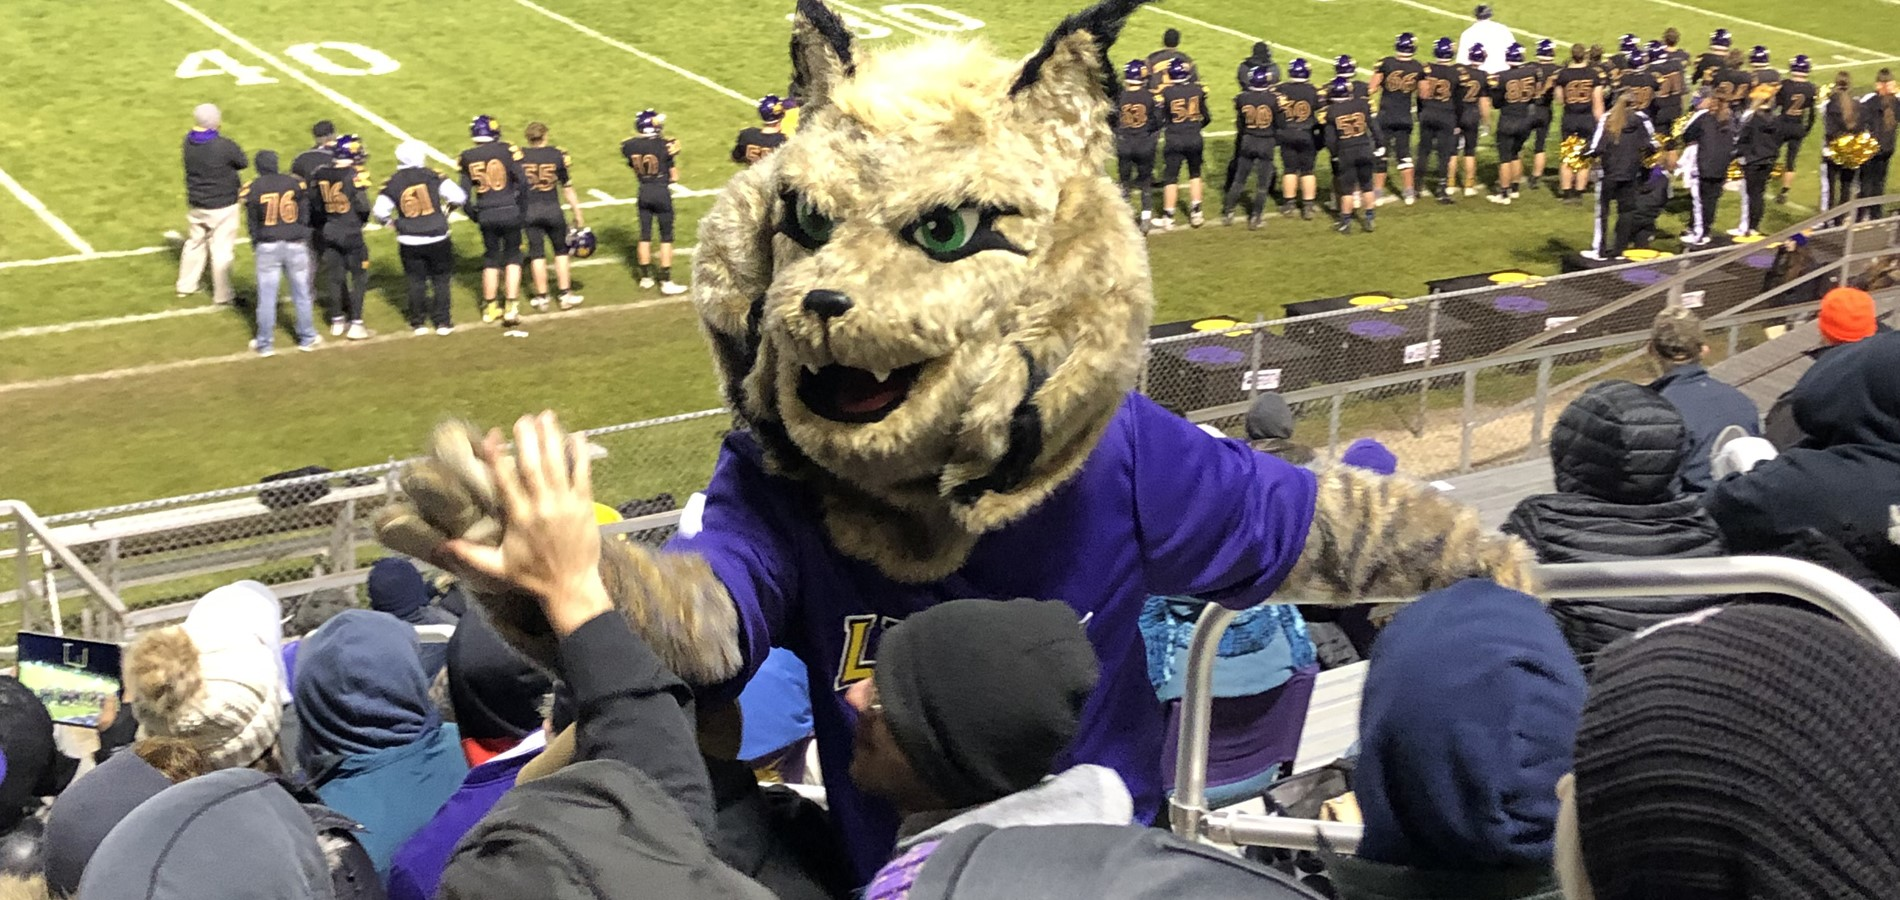 Picture of the Lynx Mascot in the crowd at a football game